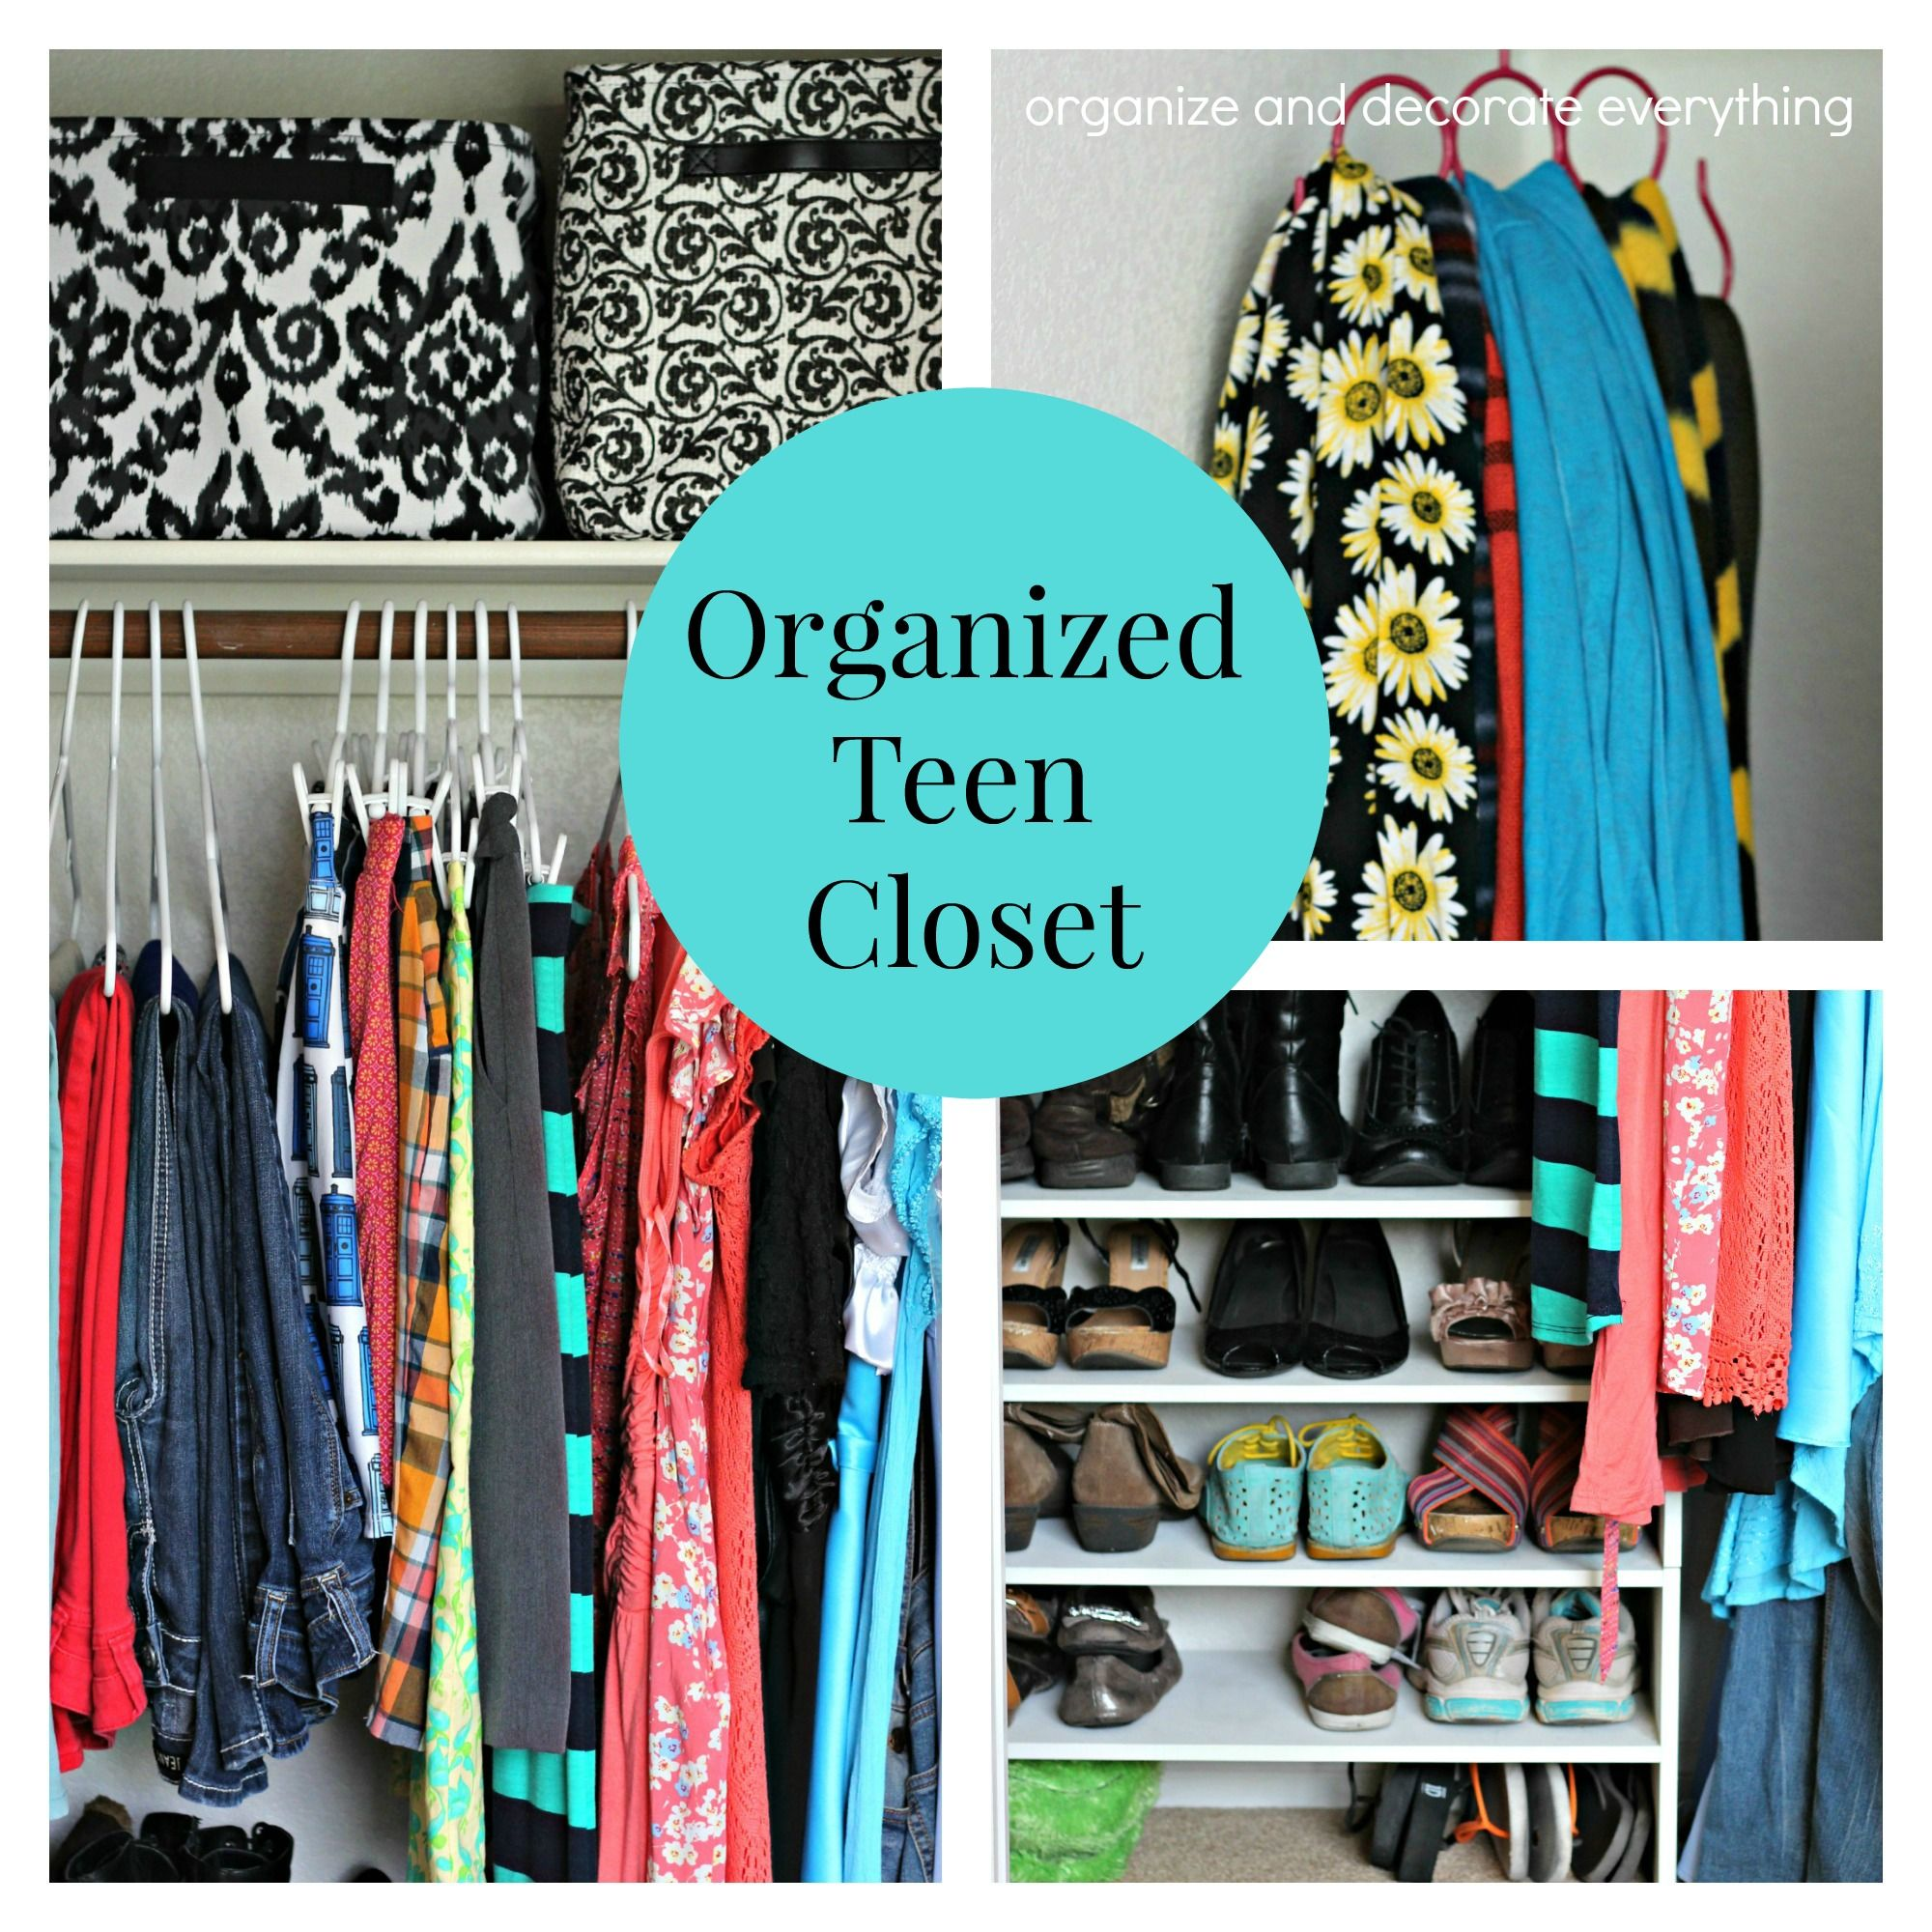 Ordinaire Organized Teen Closet   Organize And Decorate Everything Teen Closet  Organization, Bedroom Organization Diy,